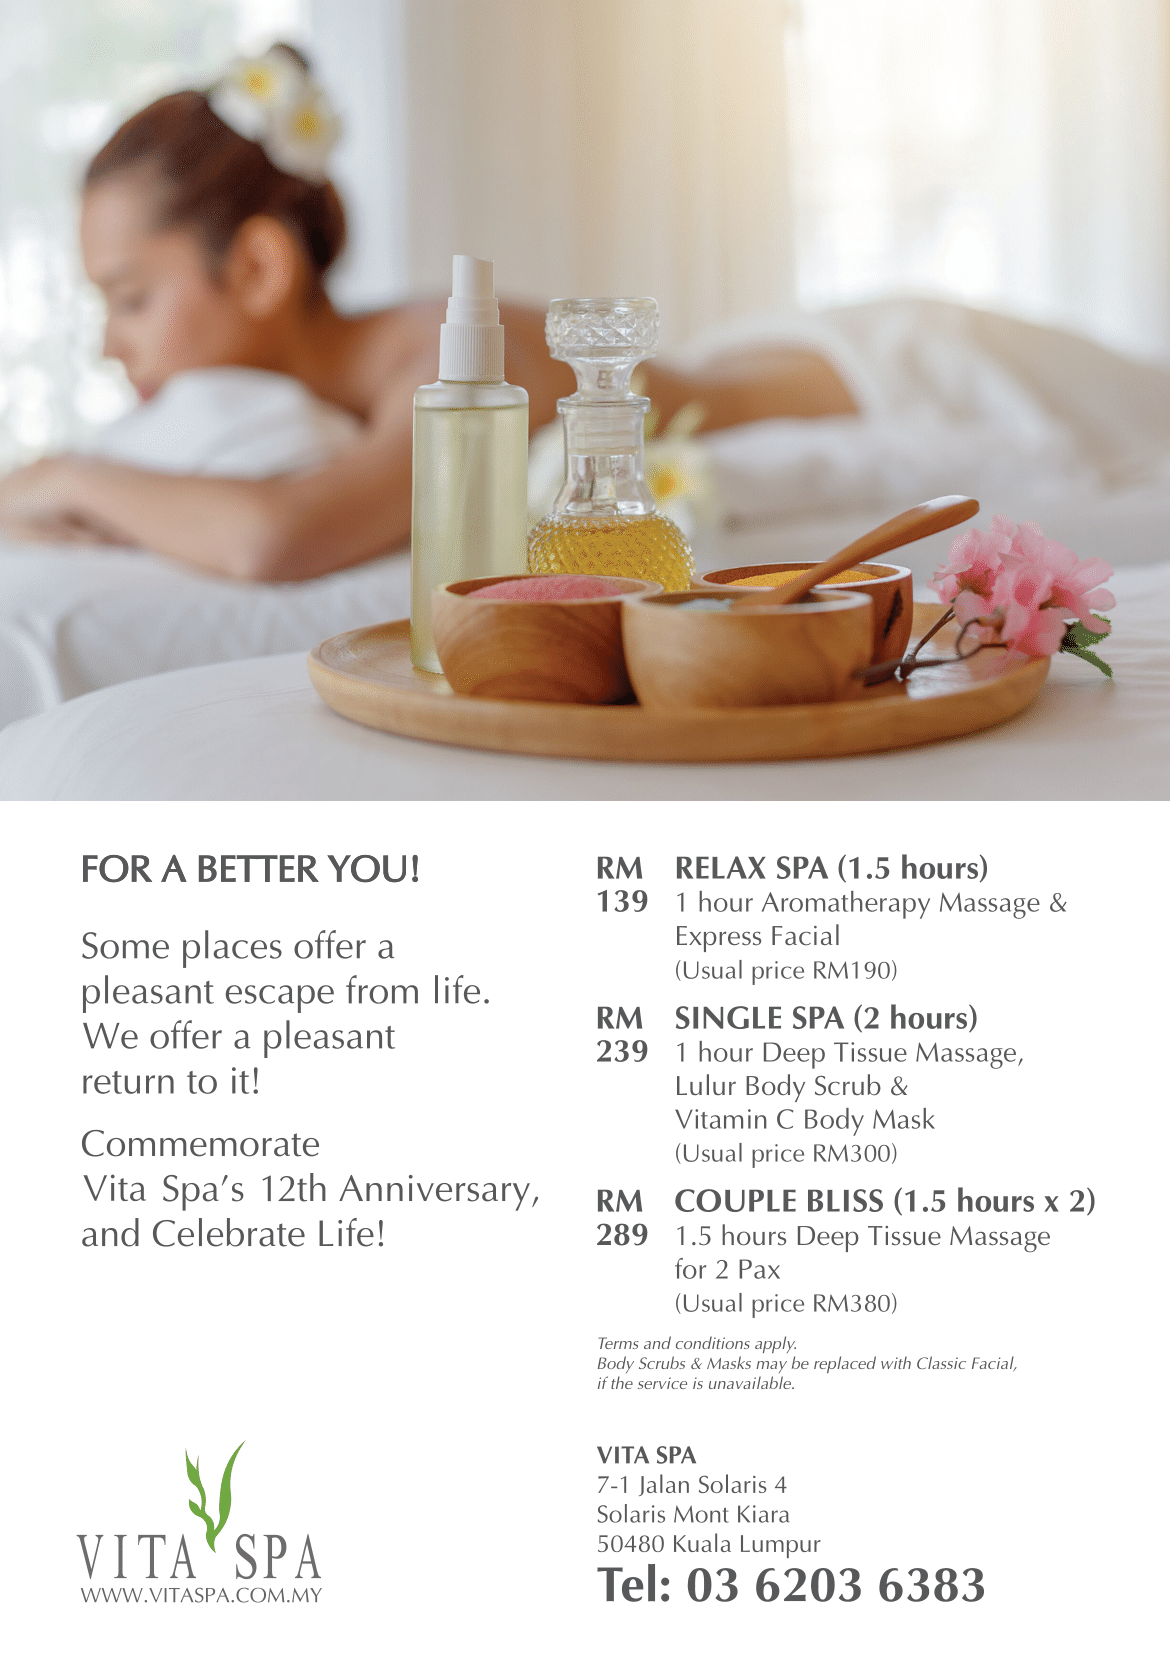 Vita Spa (Solaris branch) Promotion